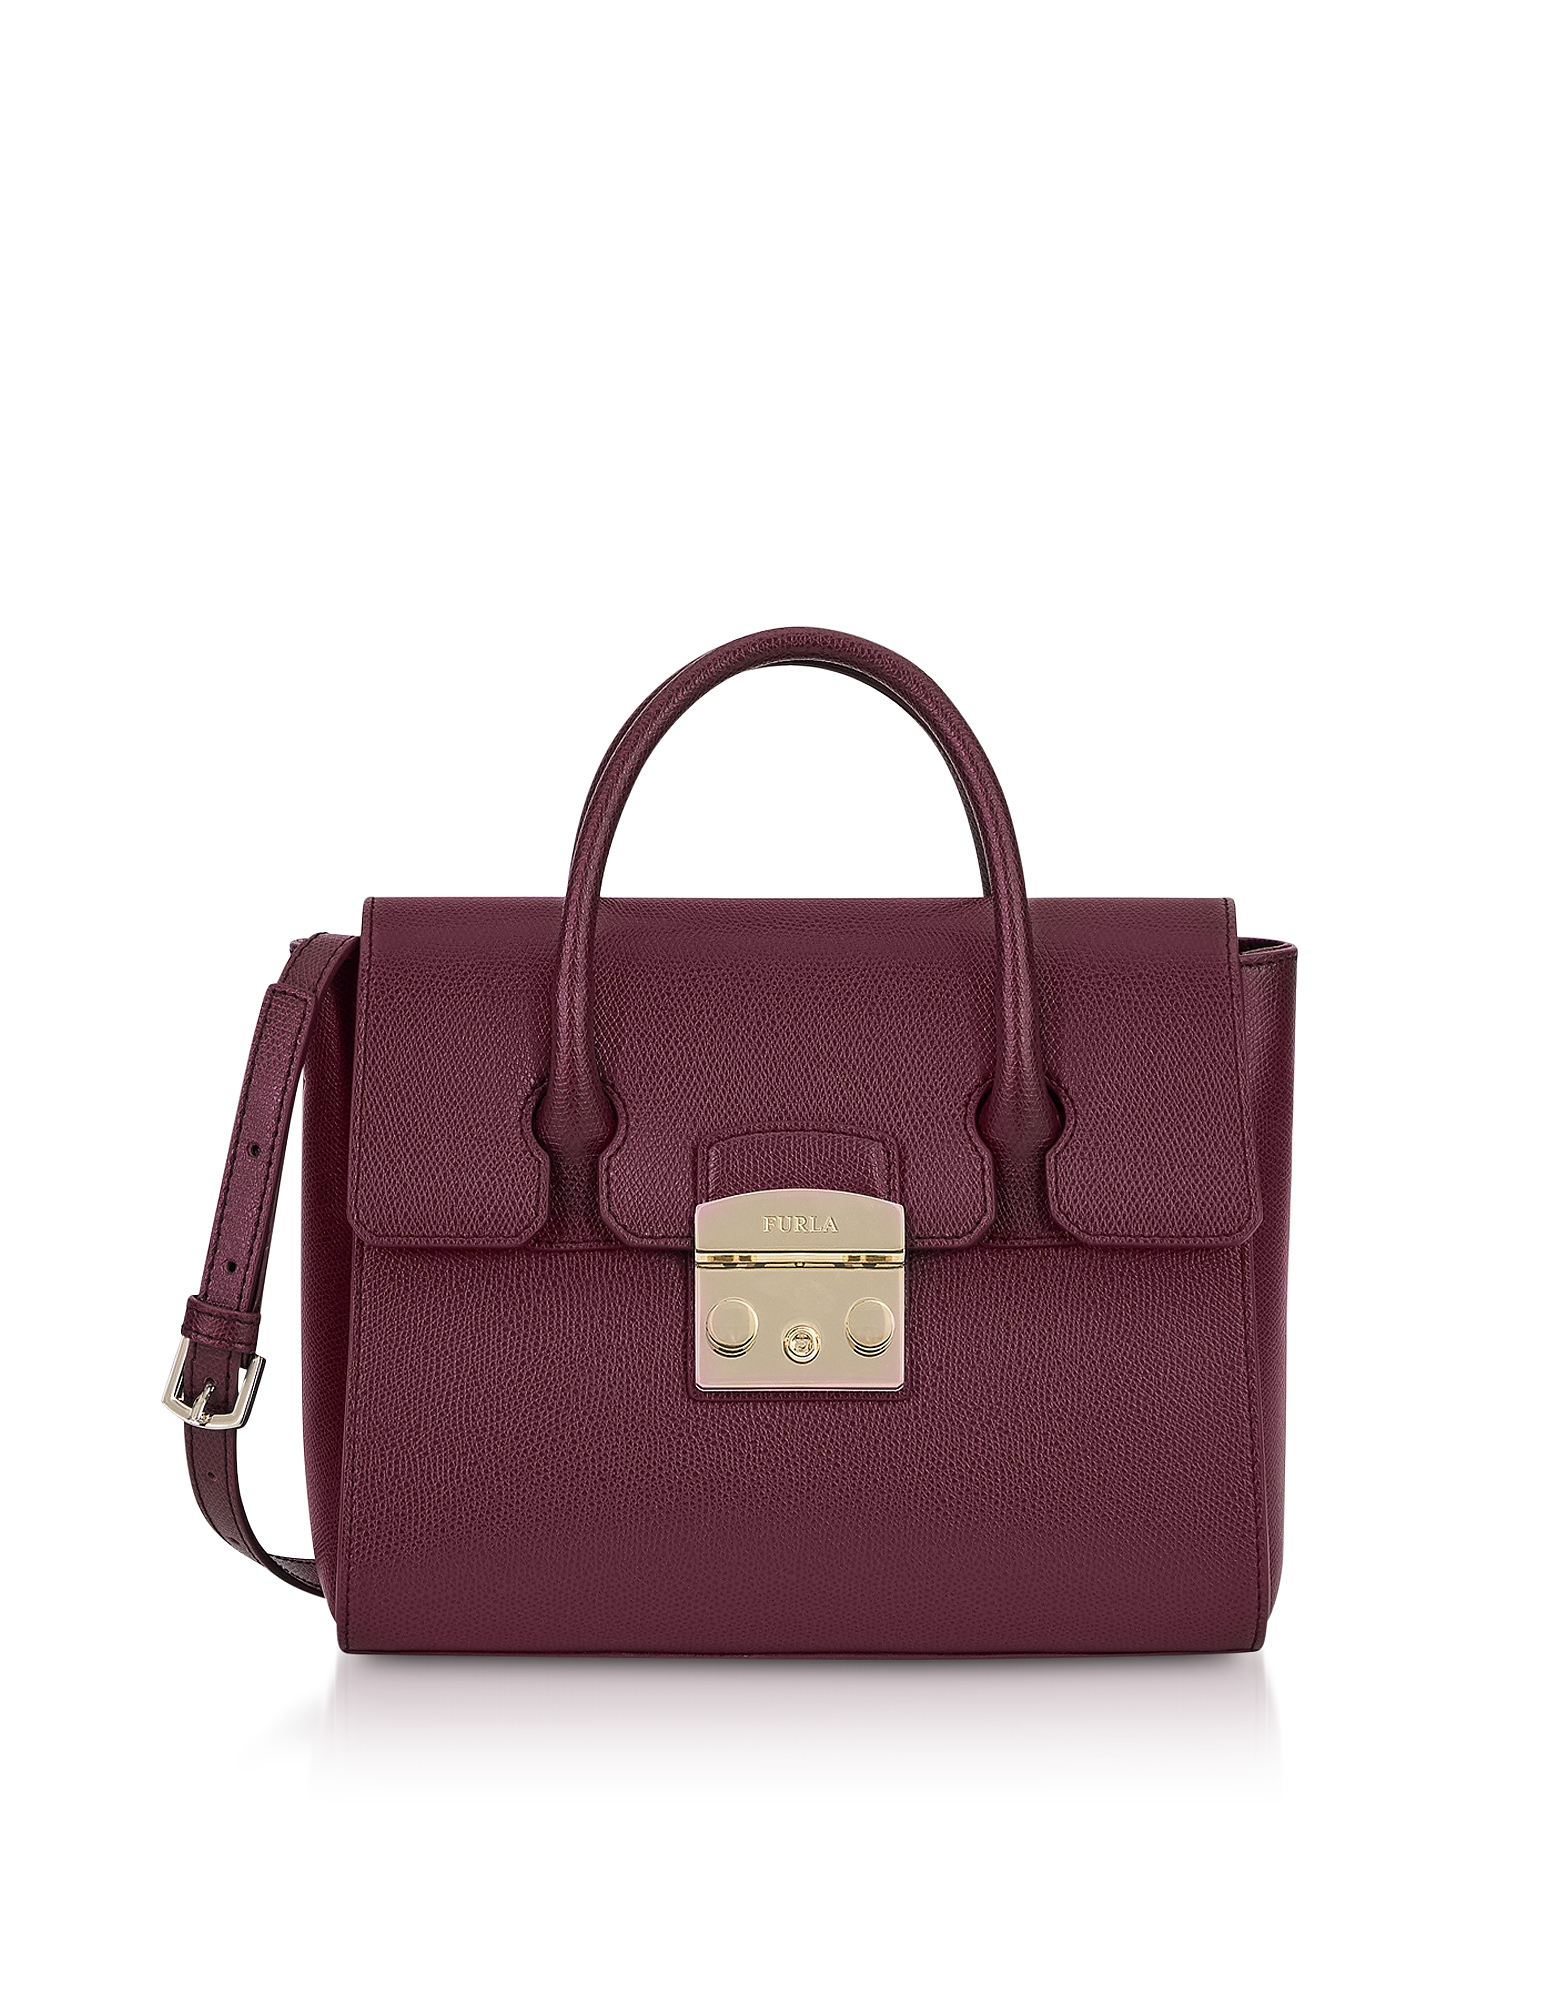 Furla Handbags, Metropolis Small Satchel Bag